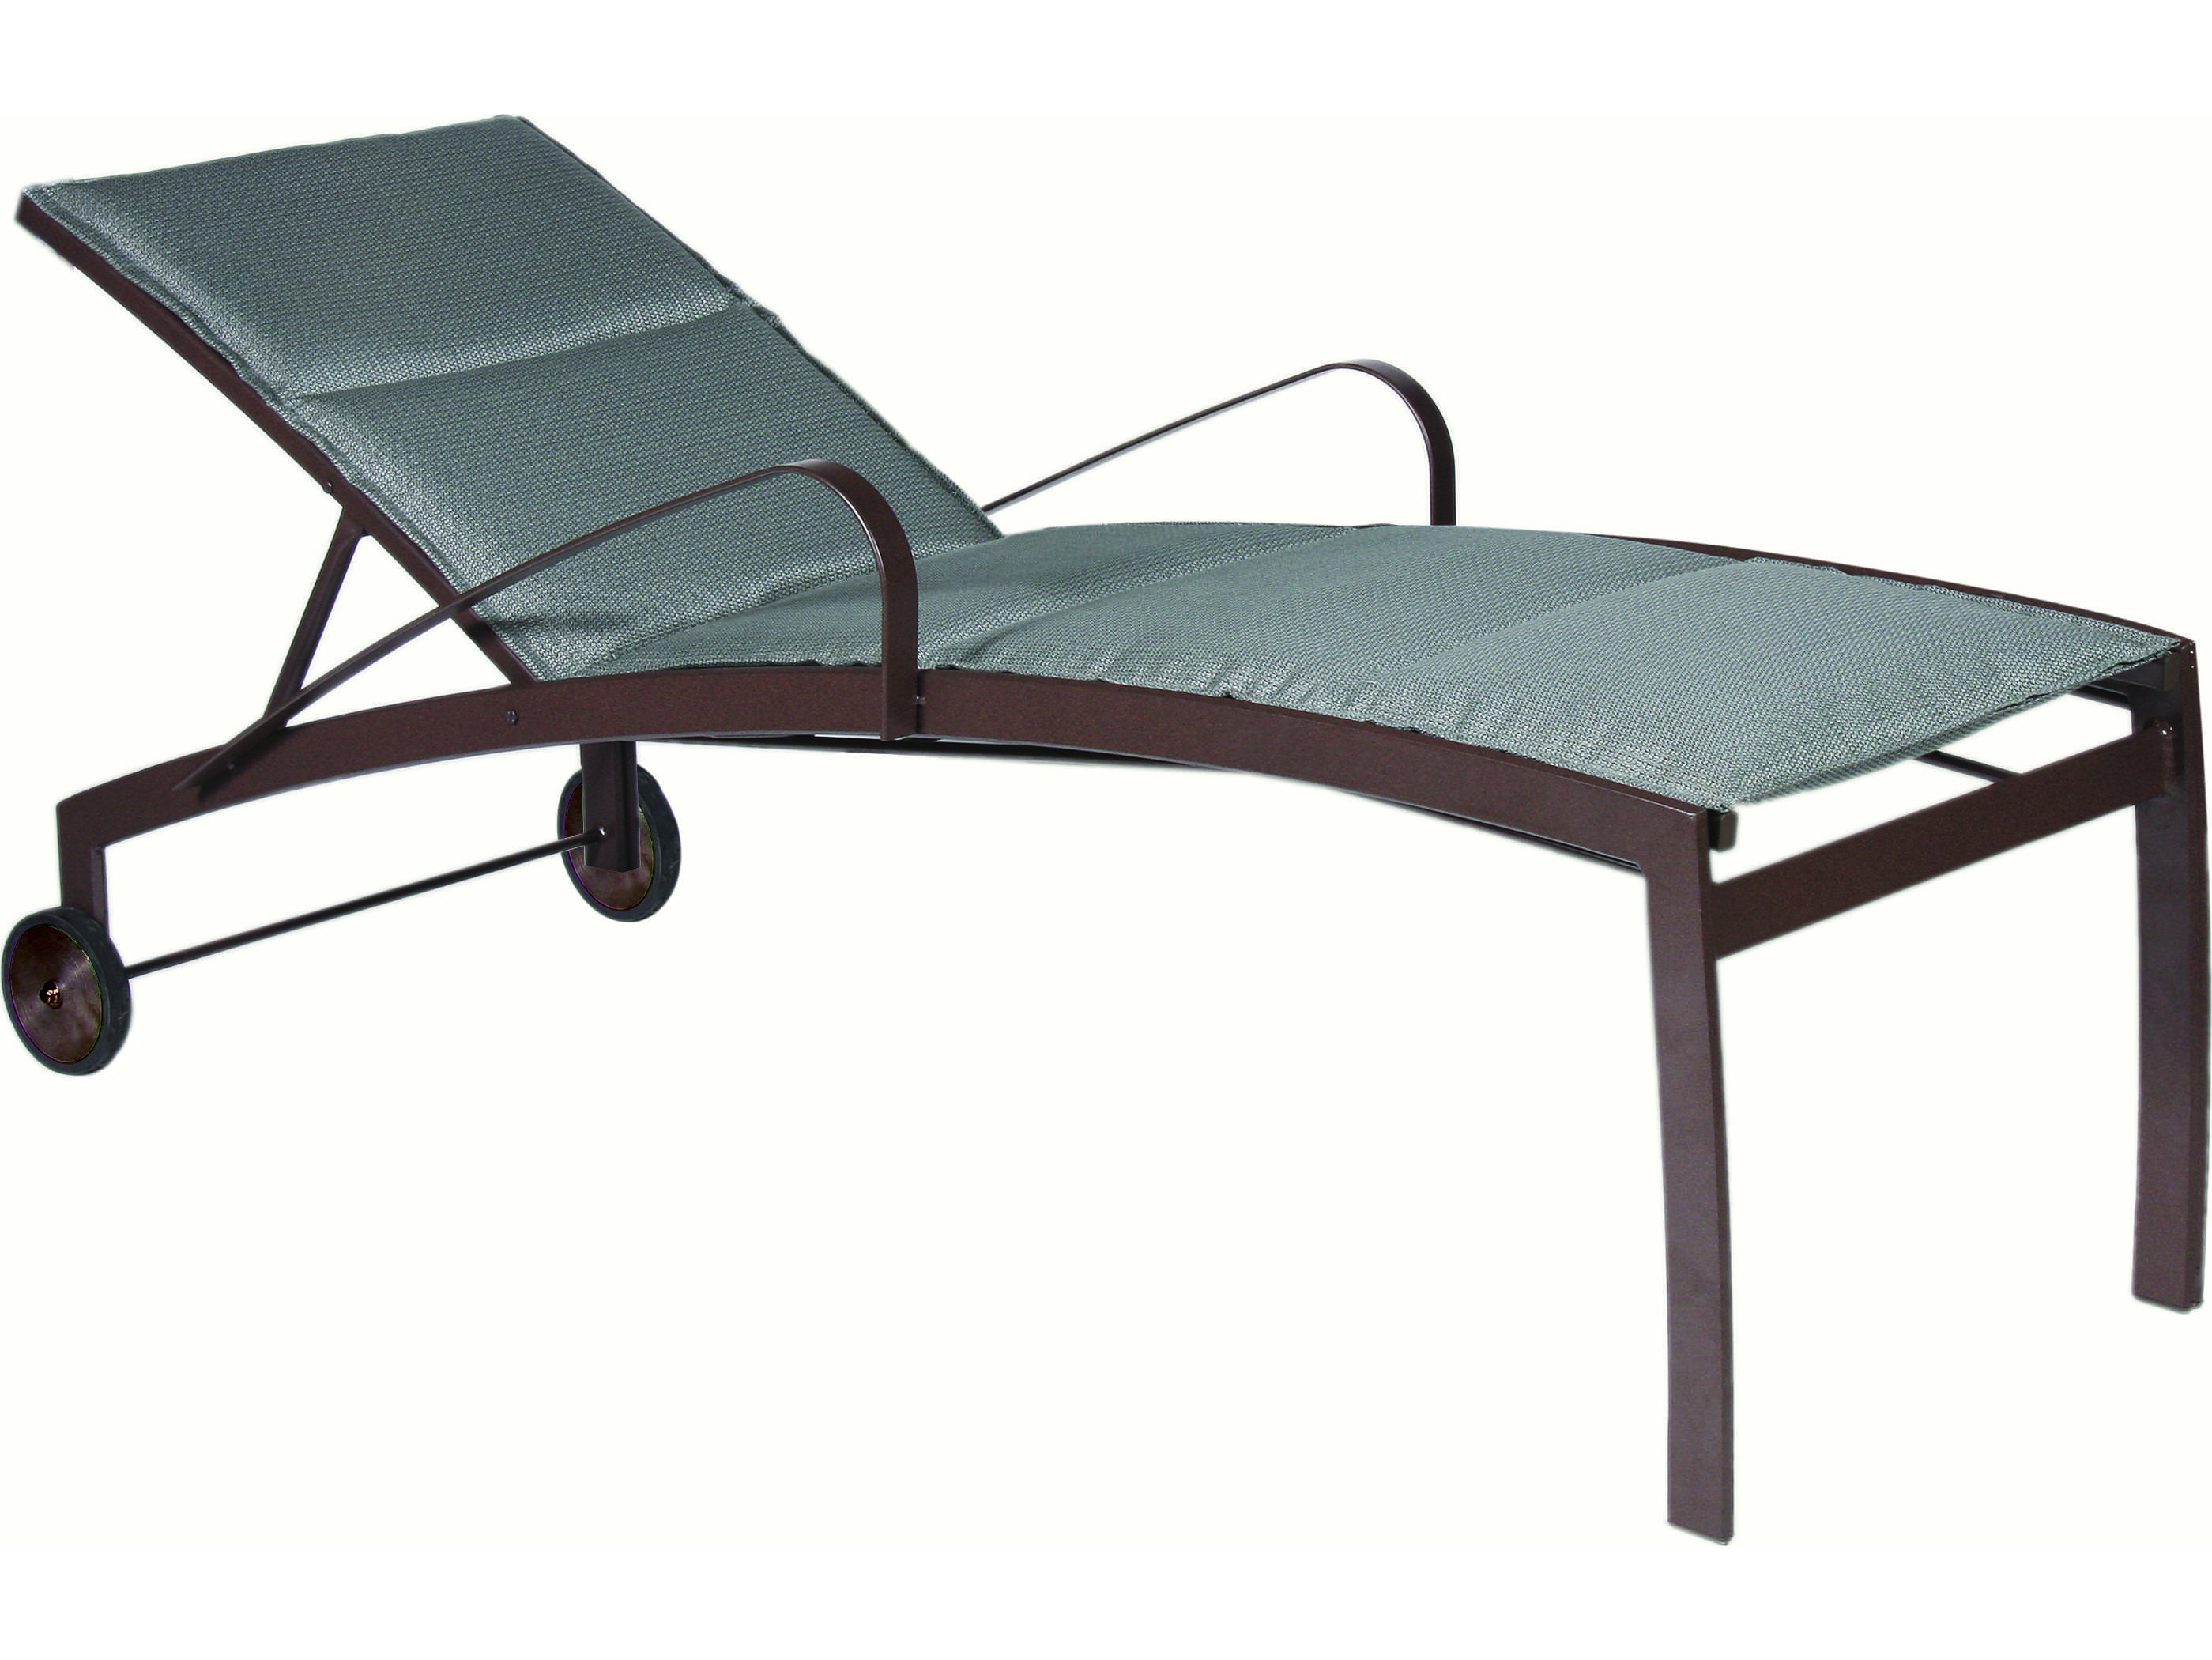 Suncoast vision sling cast aluminum chaise lounge with for Cast aluminum chaise